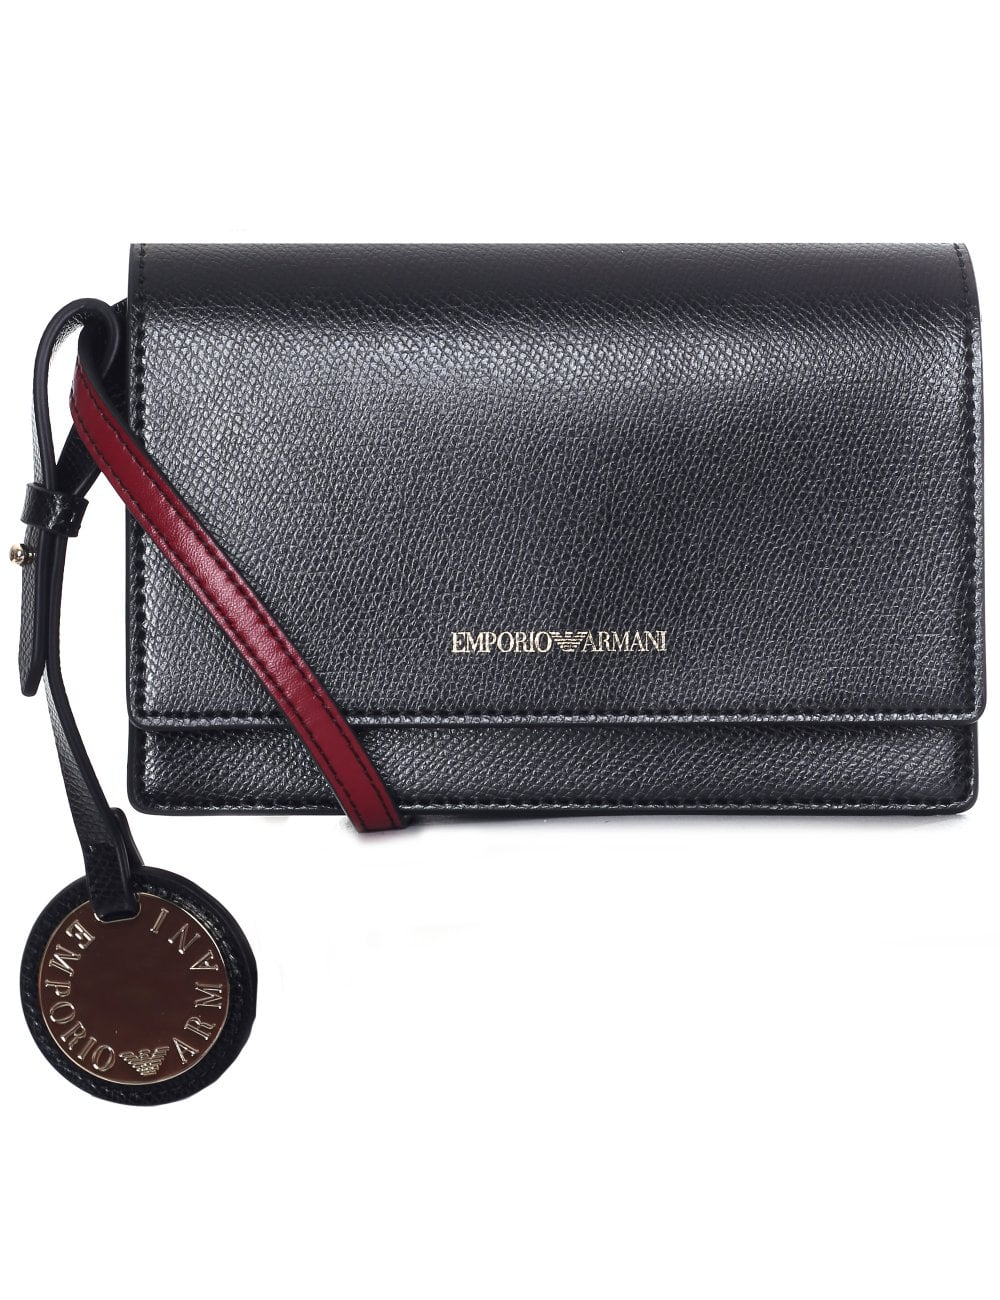 70b5c11951 Emporio Armani Women's Saffiano Small Crossbody Bag